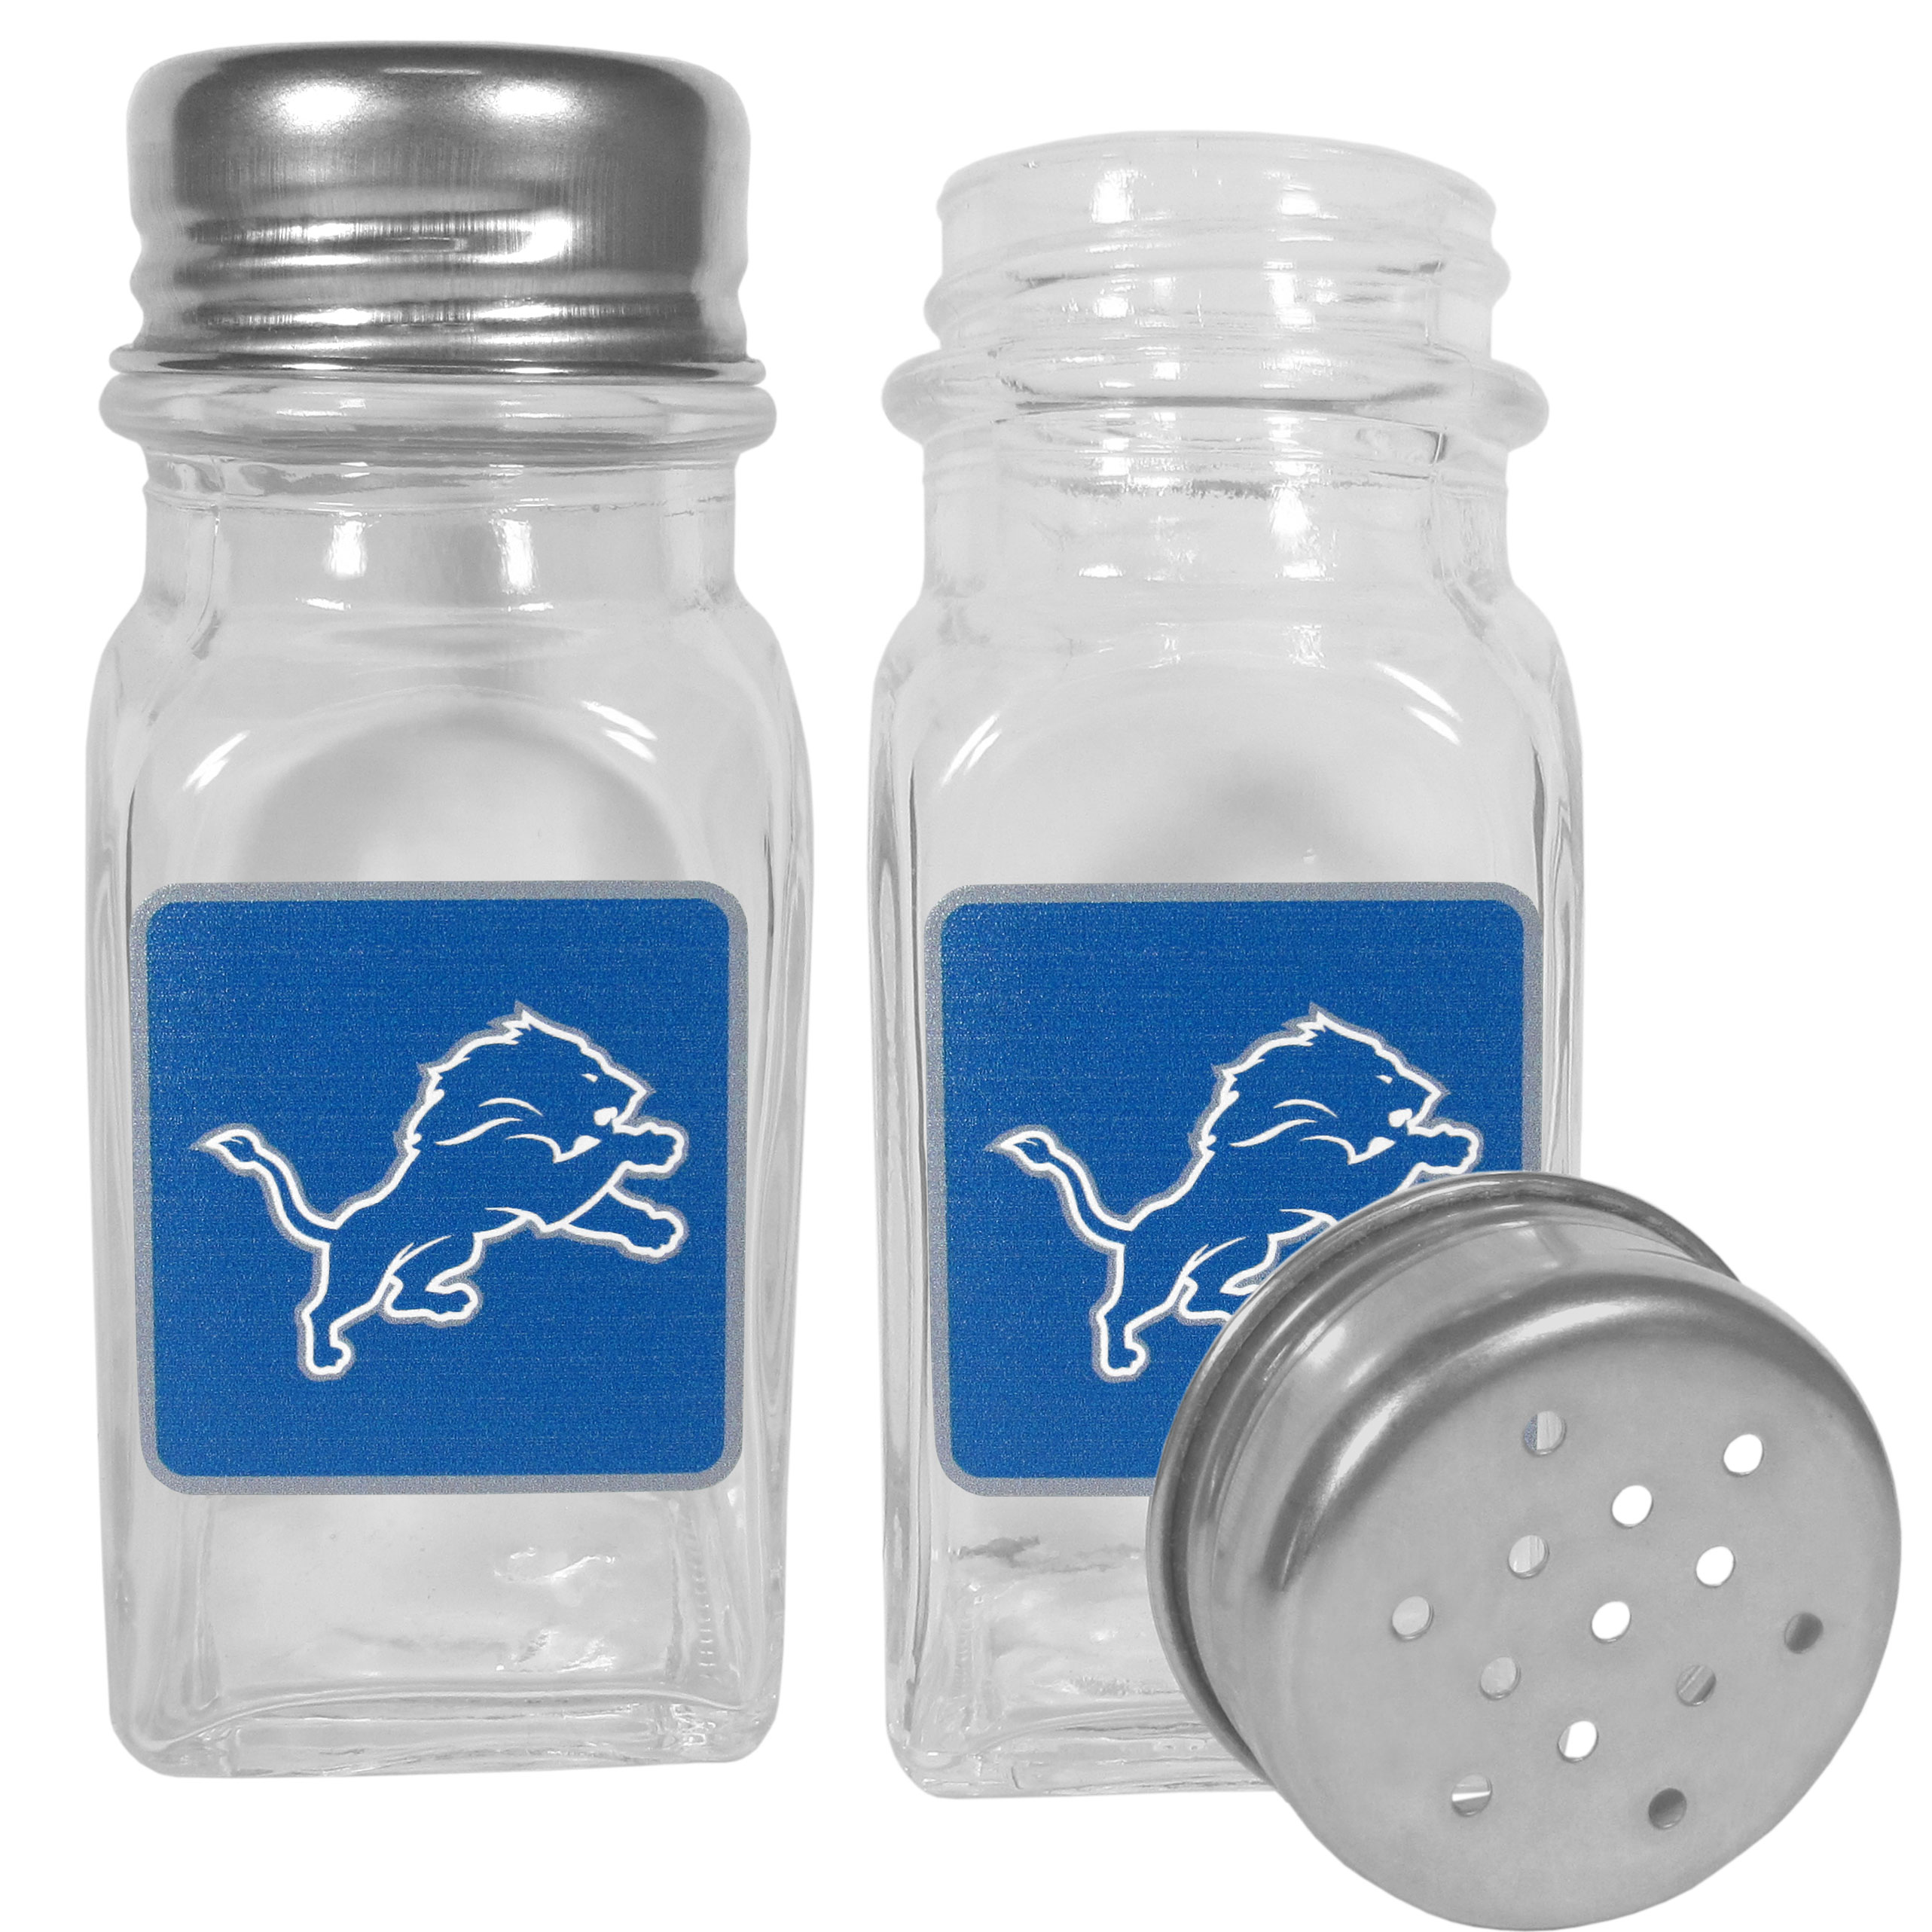 Detroit Lions Graphics Salt and Pepper Shaker - No tailgate party is complete without your Detroit Lions salt & pepper shakers featuring bright team logos. The diner replica salt and pepper shakers are glass with screw top lids. These team shakers are a great grill accessory whether you are barbecuing on the patio, picnicing or having a game day party.